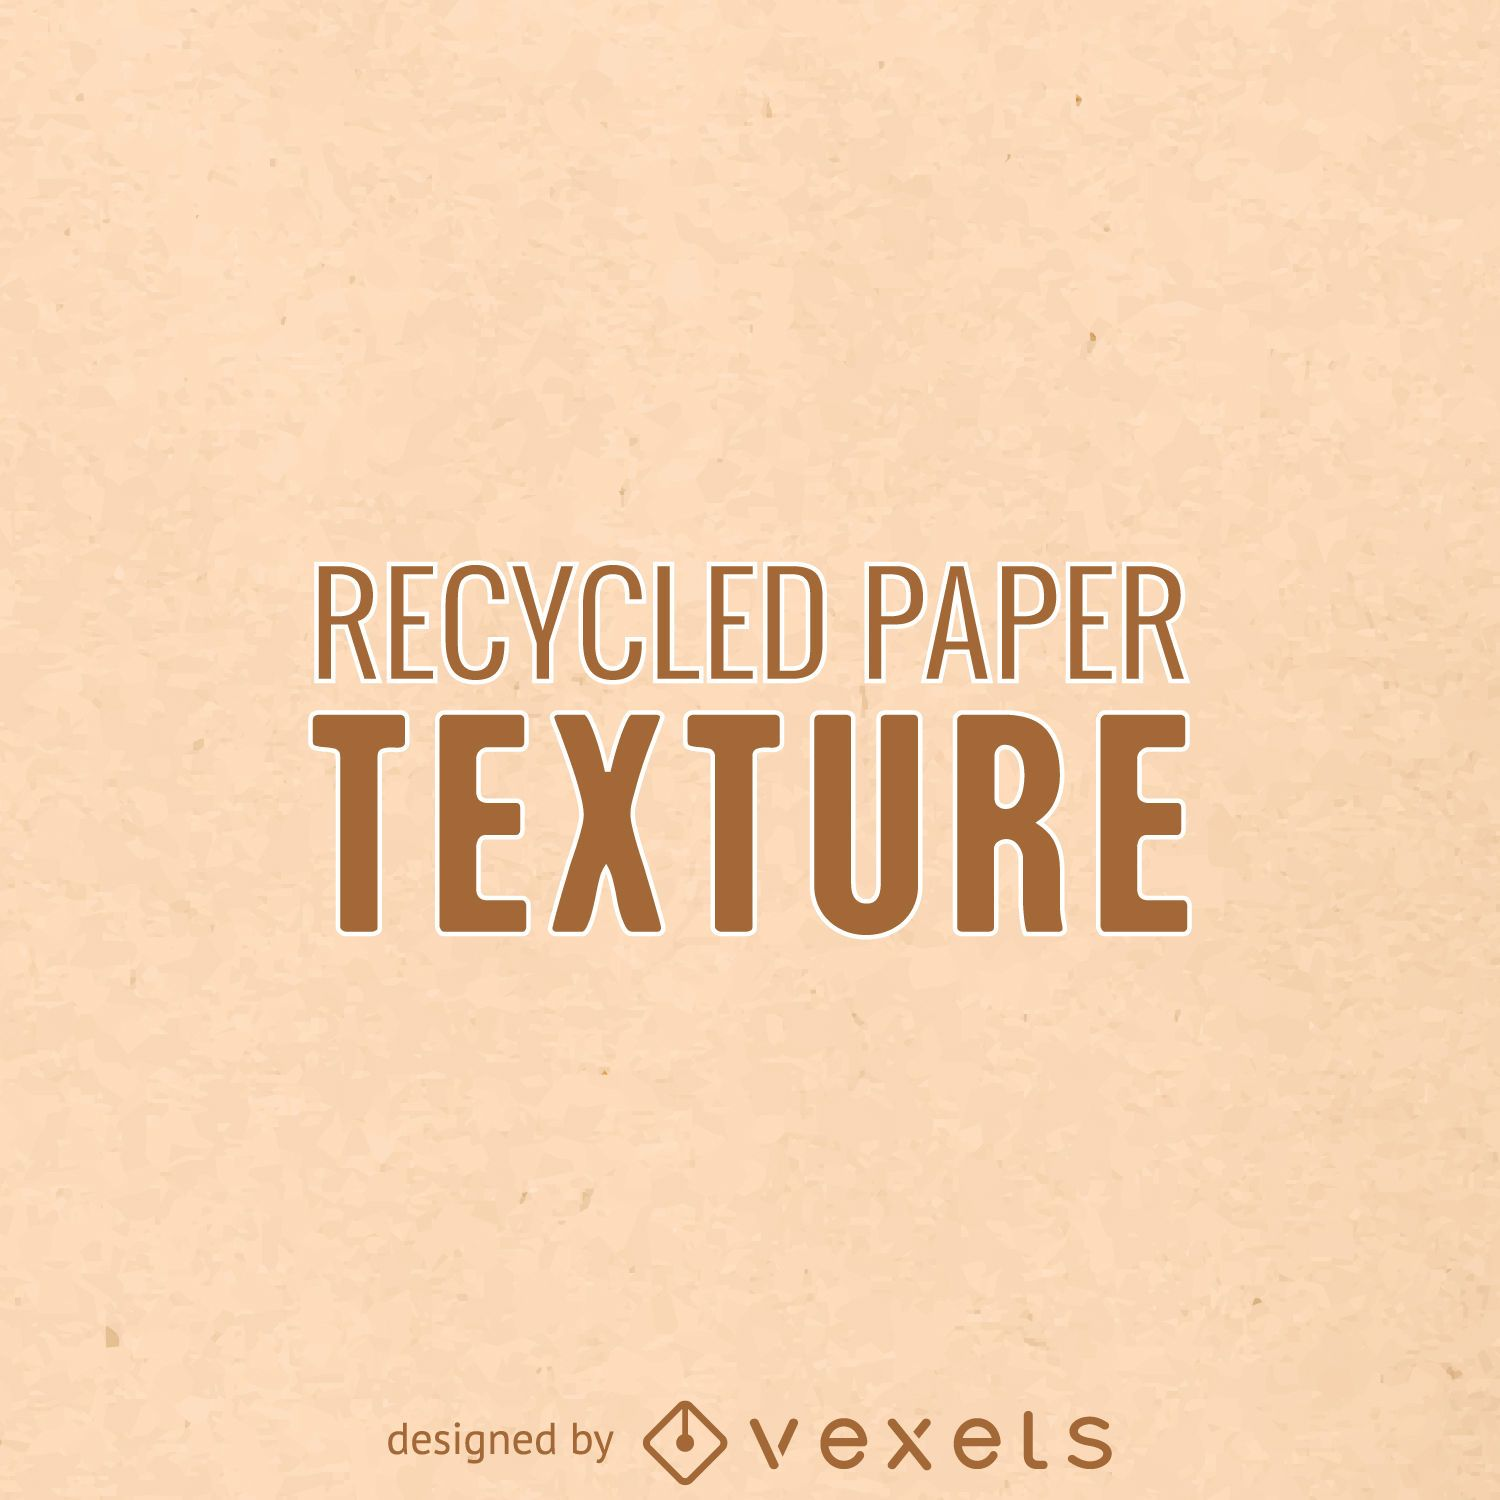 Recycled paper texture background - Vector download